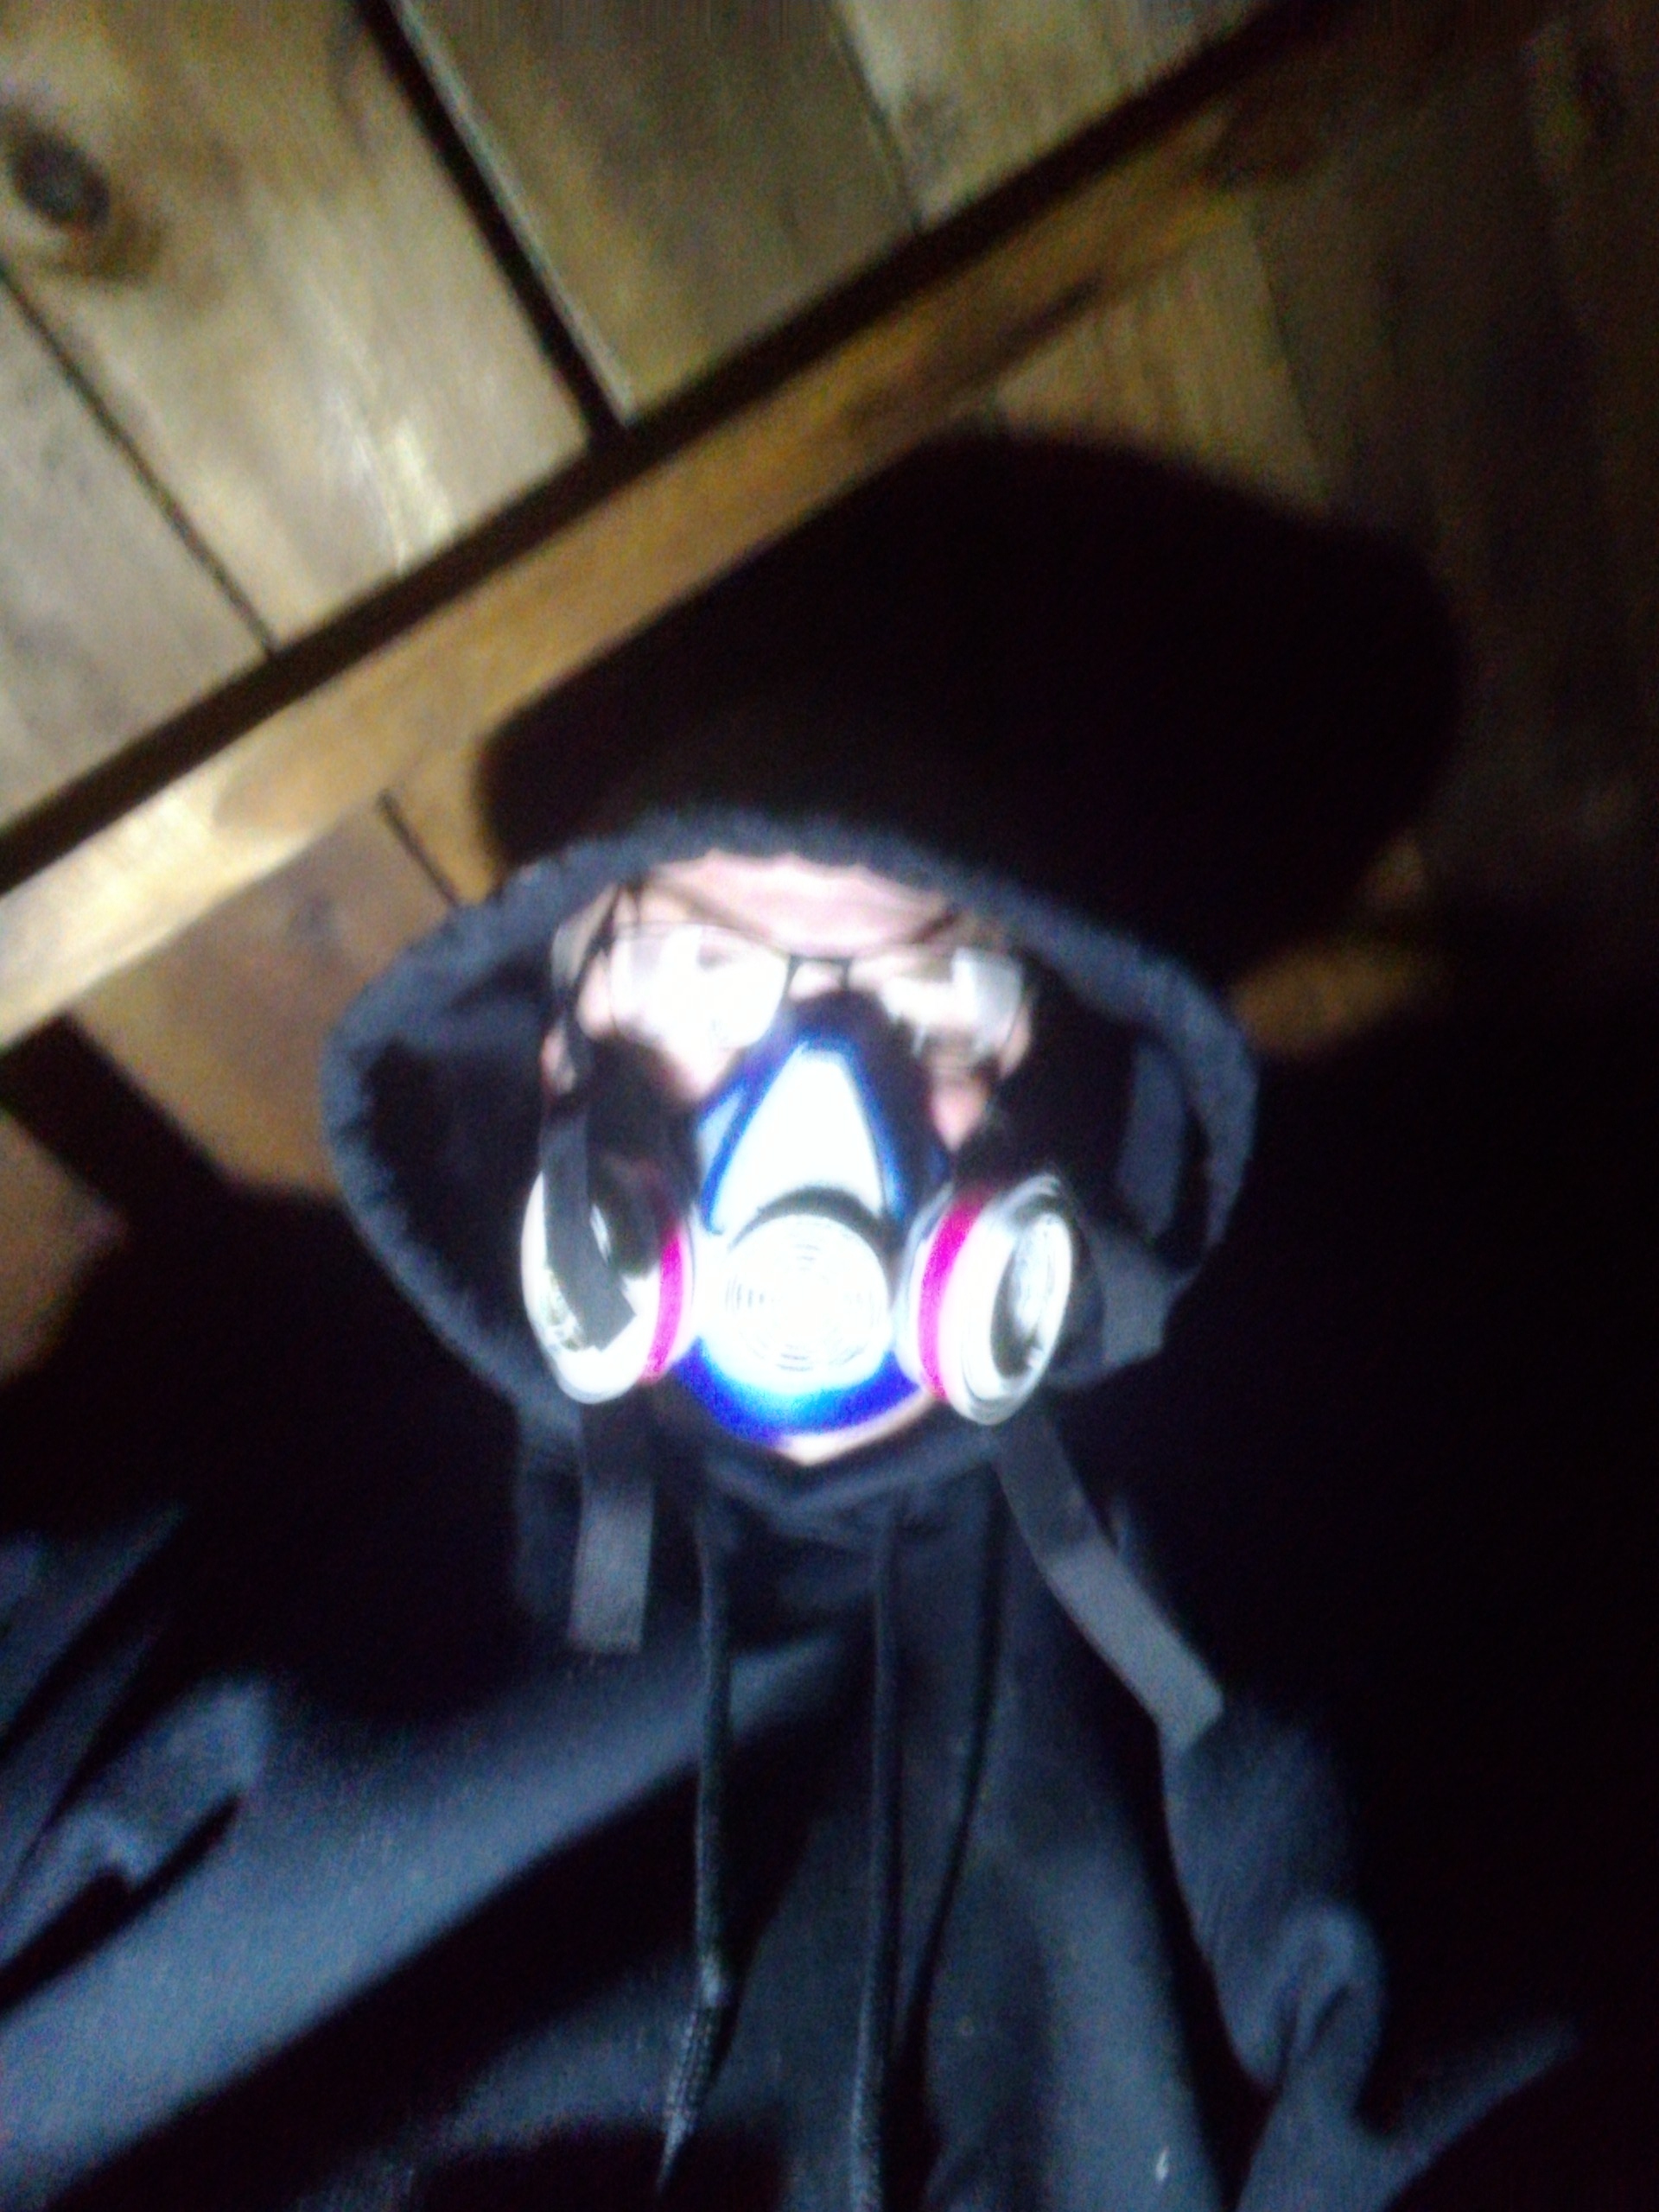 A blurry selfie of me hearing a black hooded sweatshirt and a dust mask while working in the attic. Planks for the rook are just behind me.